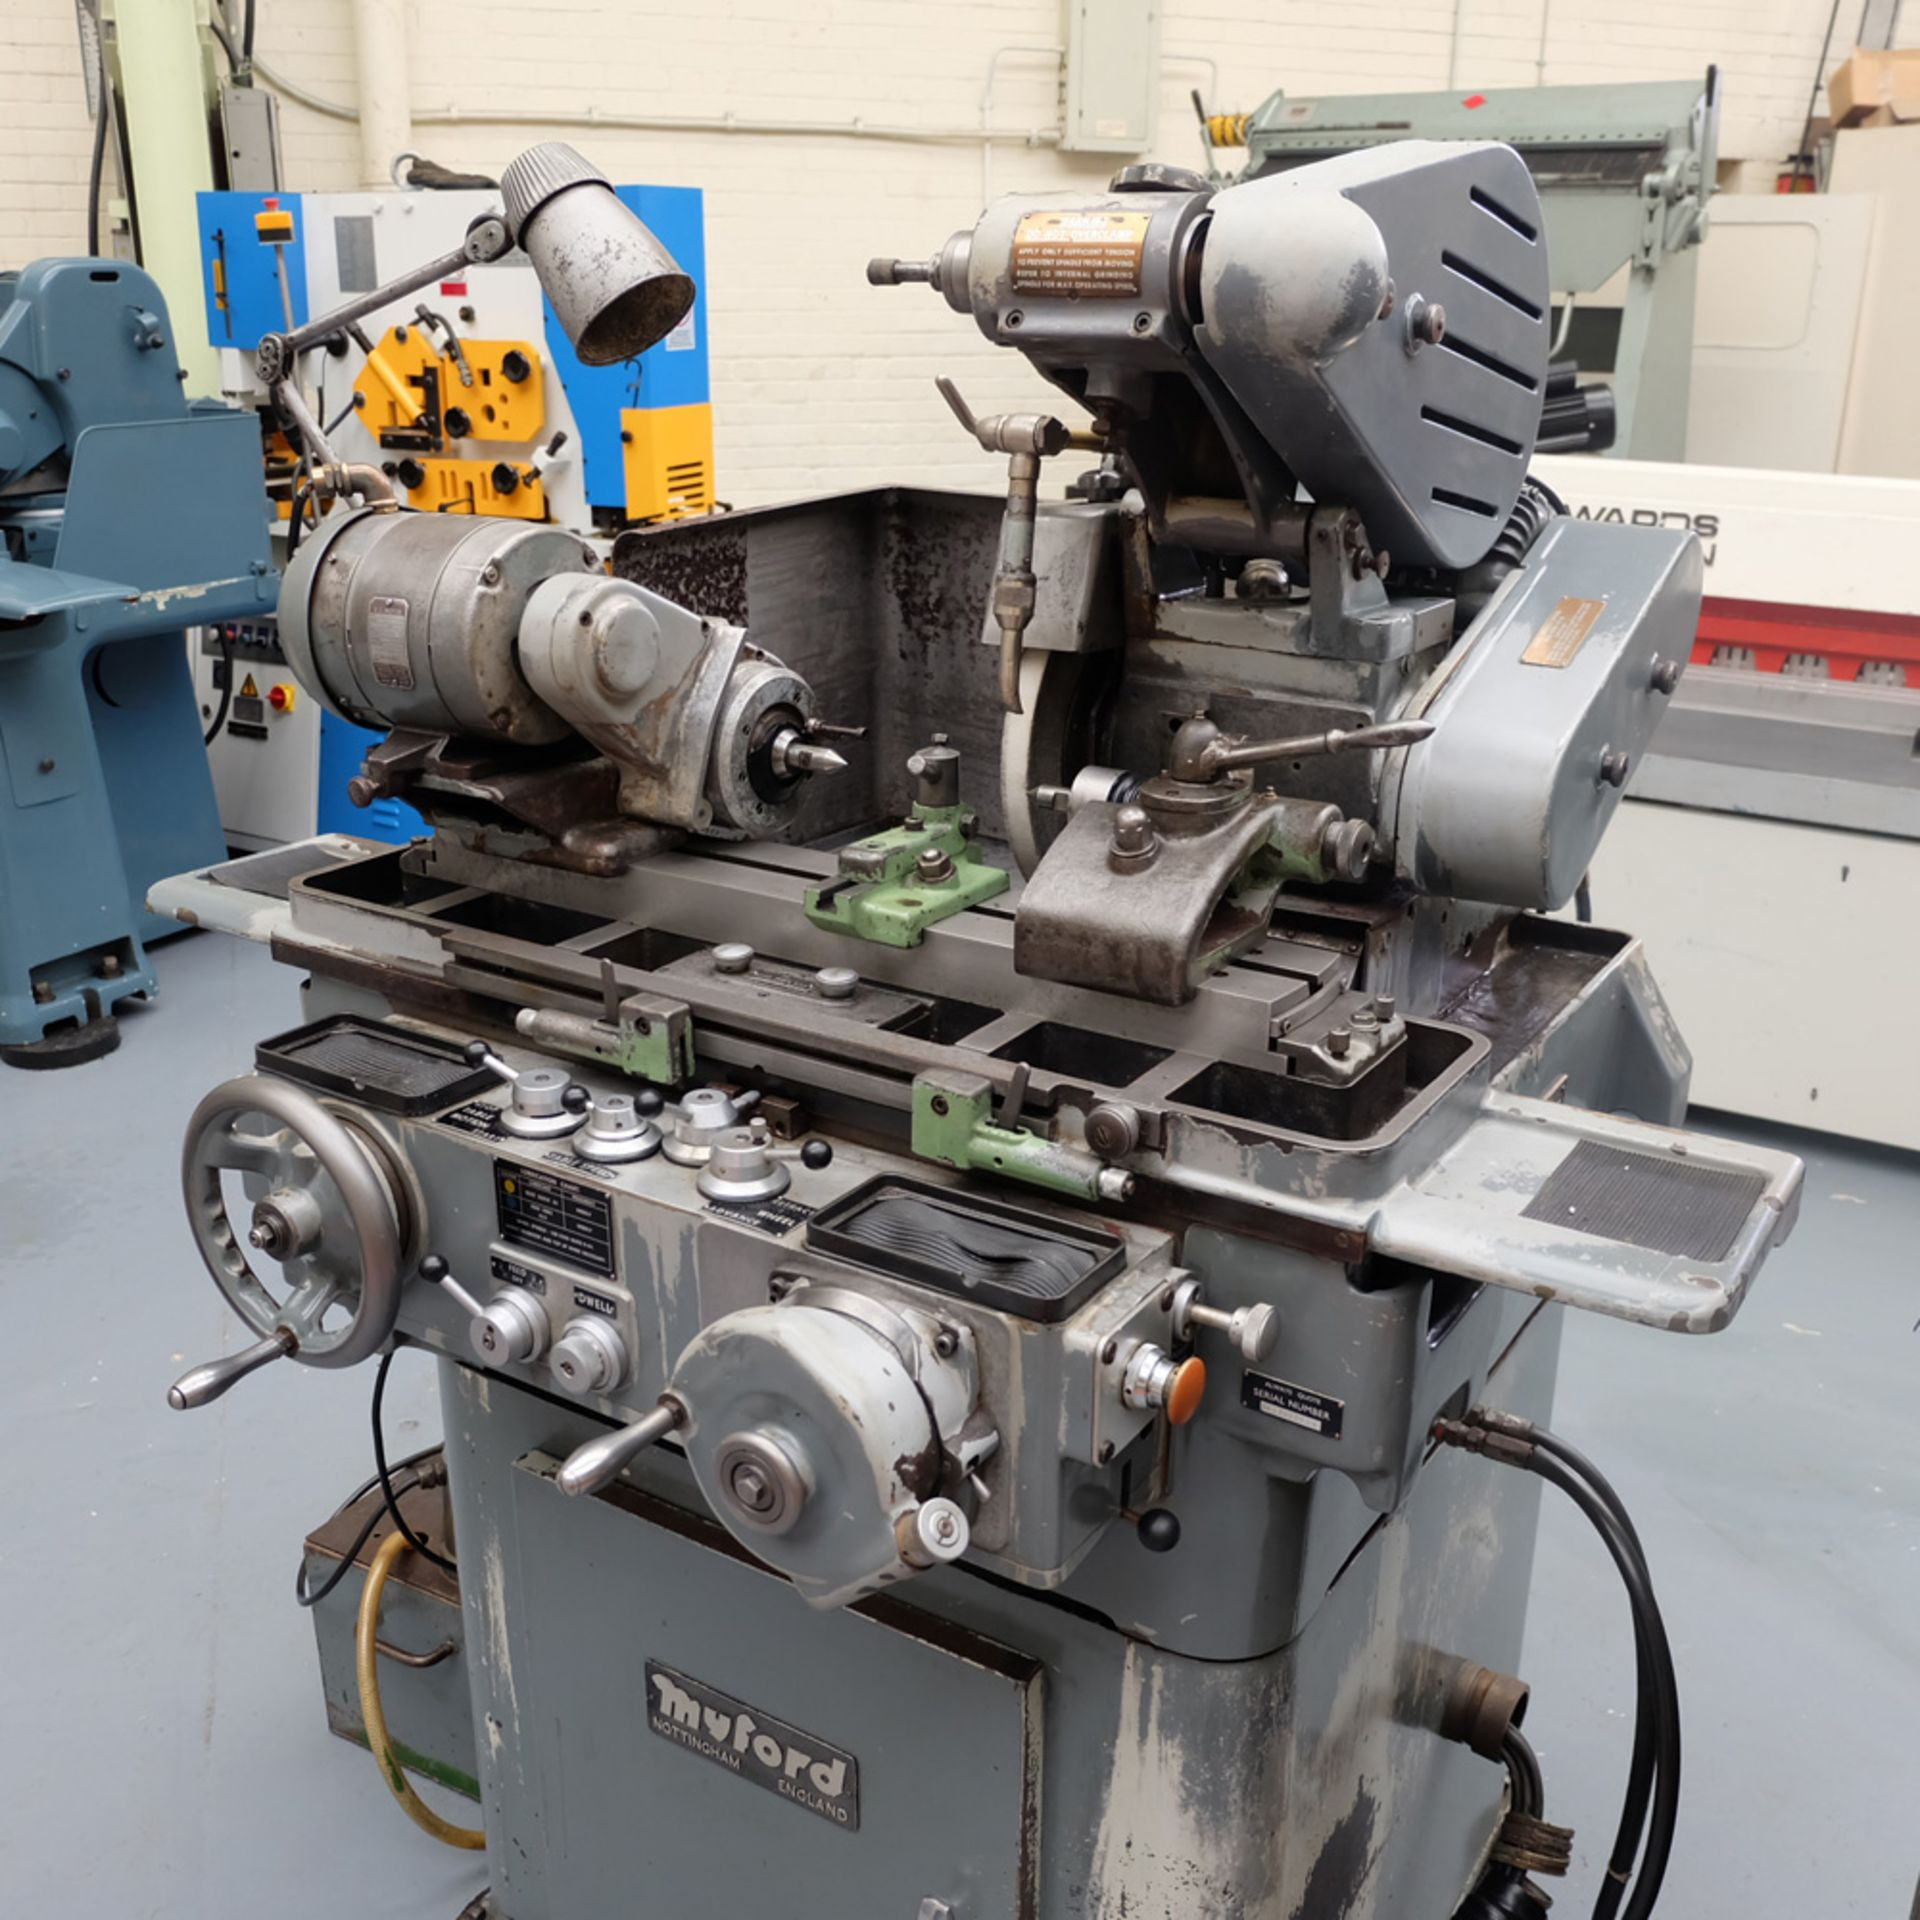 "Myford MG12-HA Hydraulic Cylindrical Grinder. Max Grinding Capacity 3"" Diameter. - Image 2 of 16"